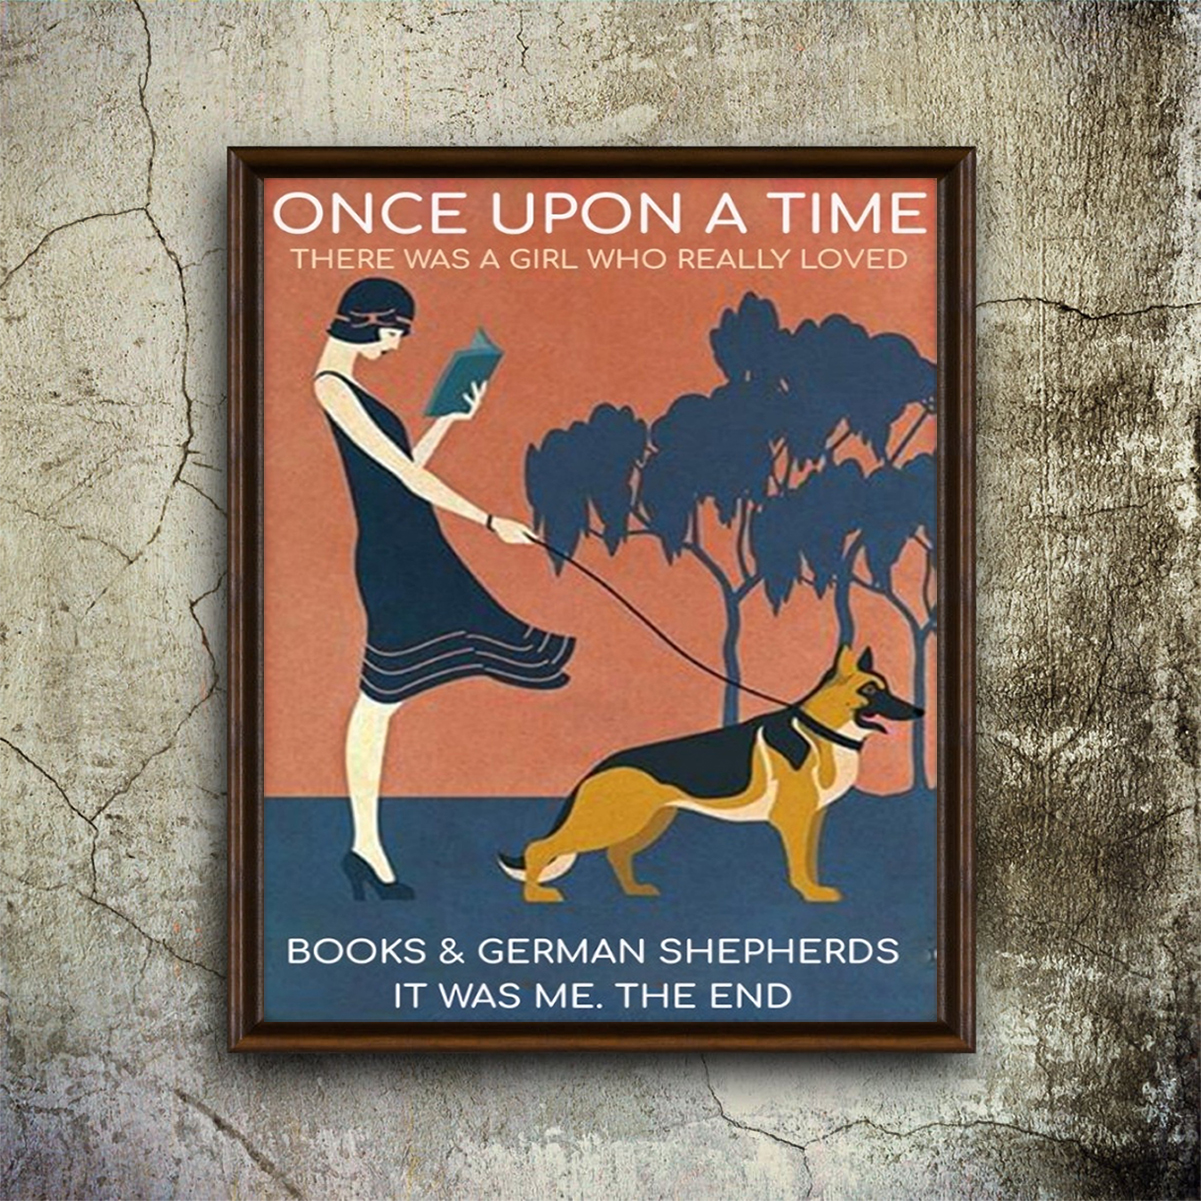 Once upon a time there was a girl who really loved books and german shepherds poster A1